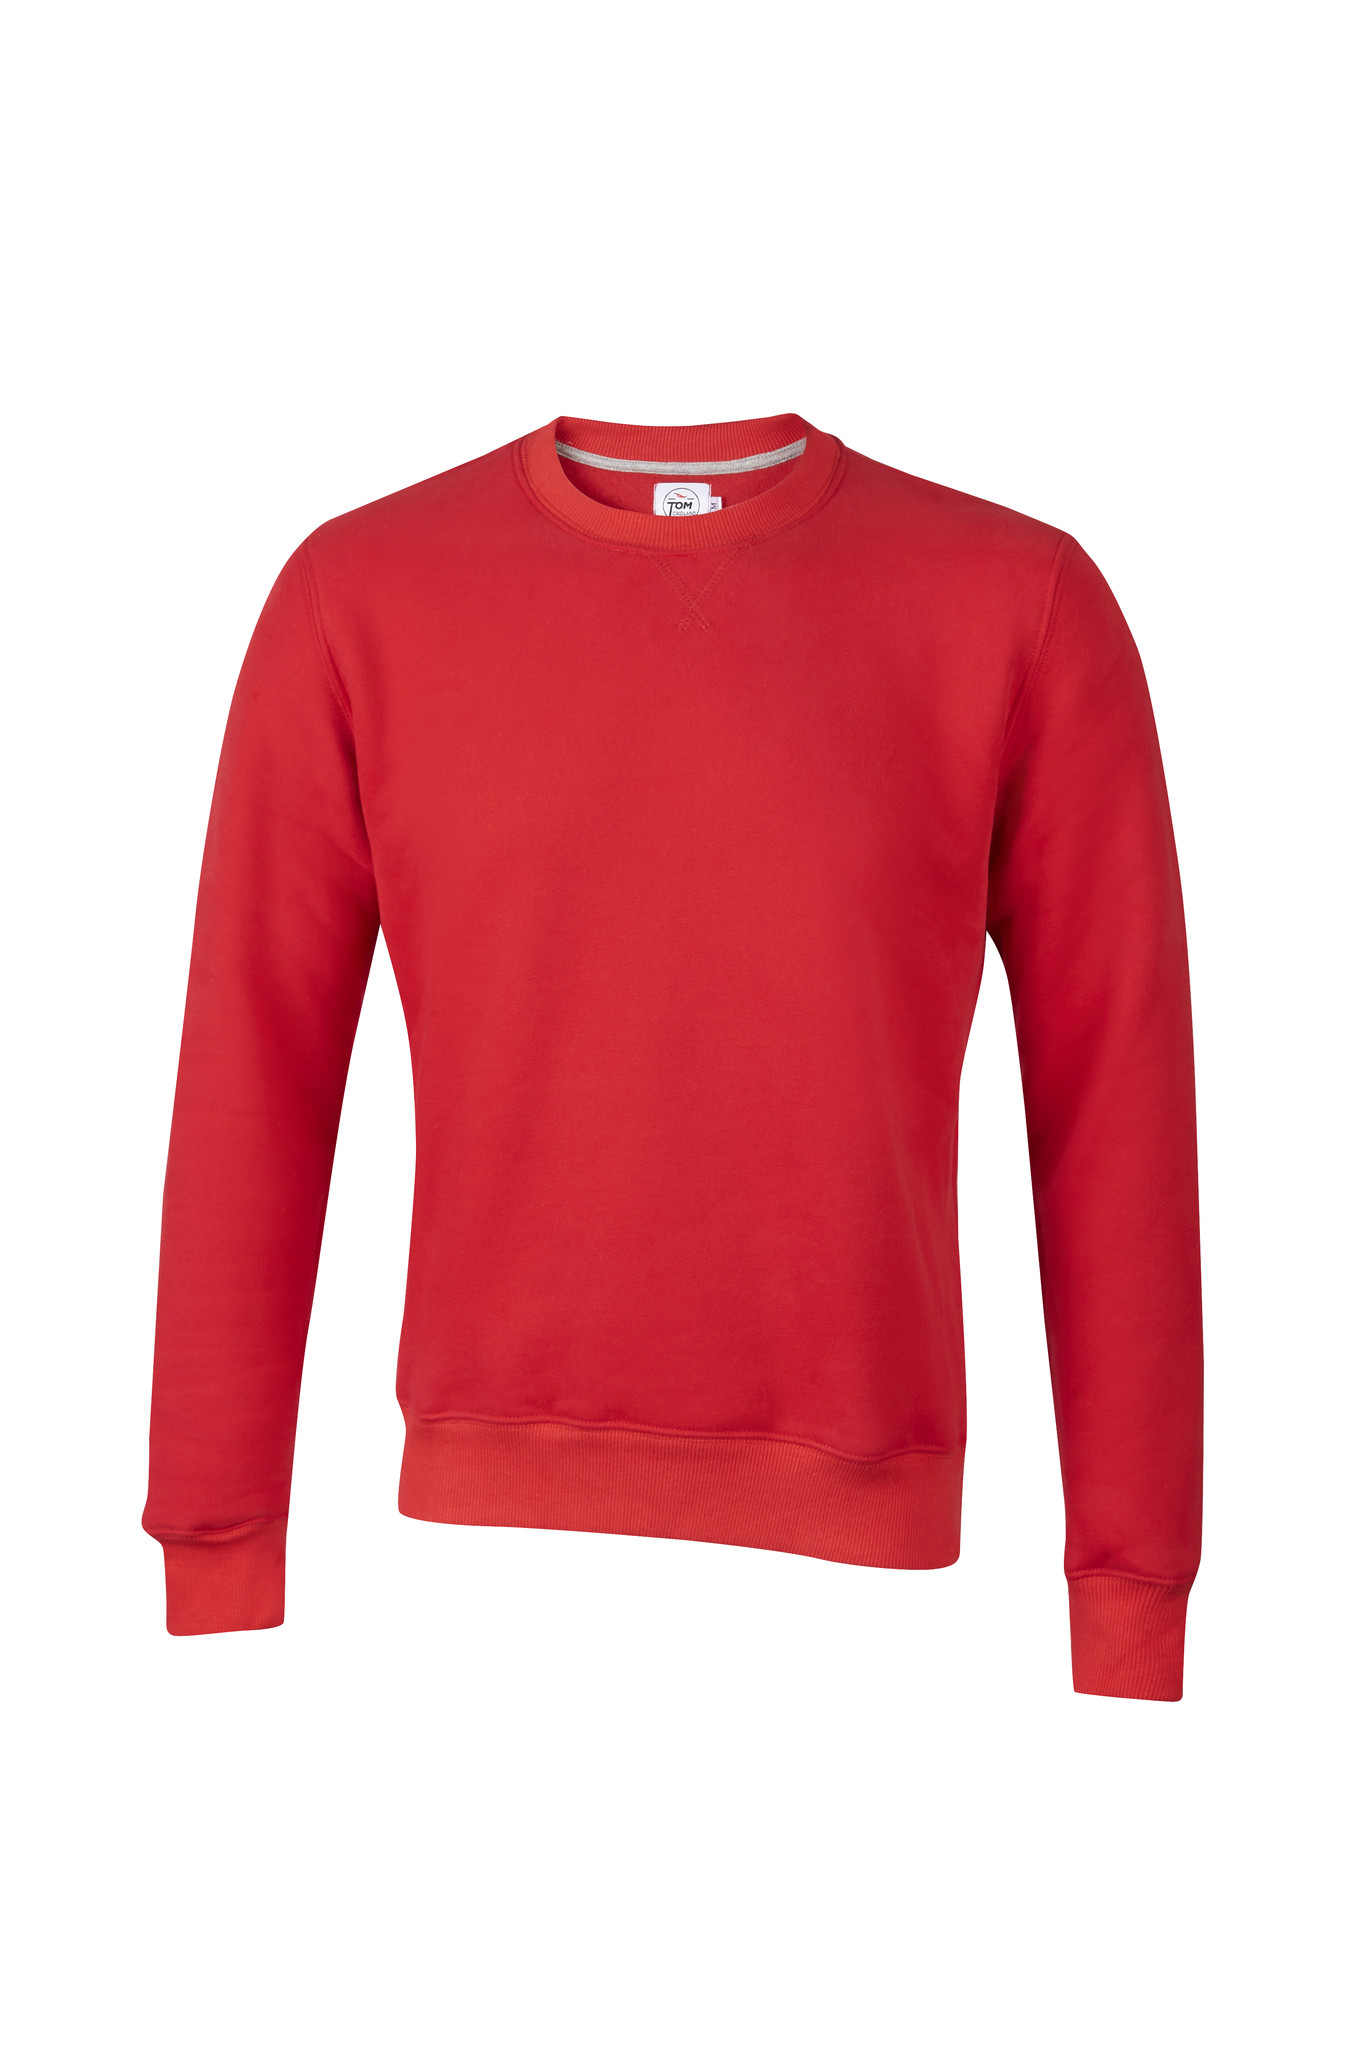 Tom_Cridland_30_Year_Sweatshirt_Chilli_Red_III.jpg